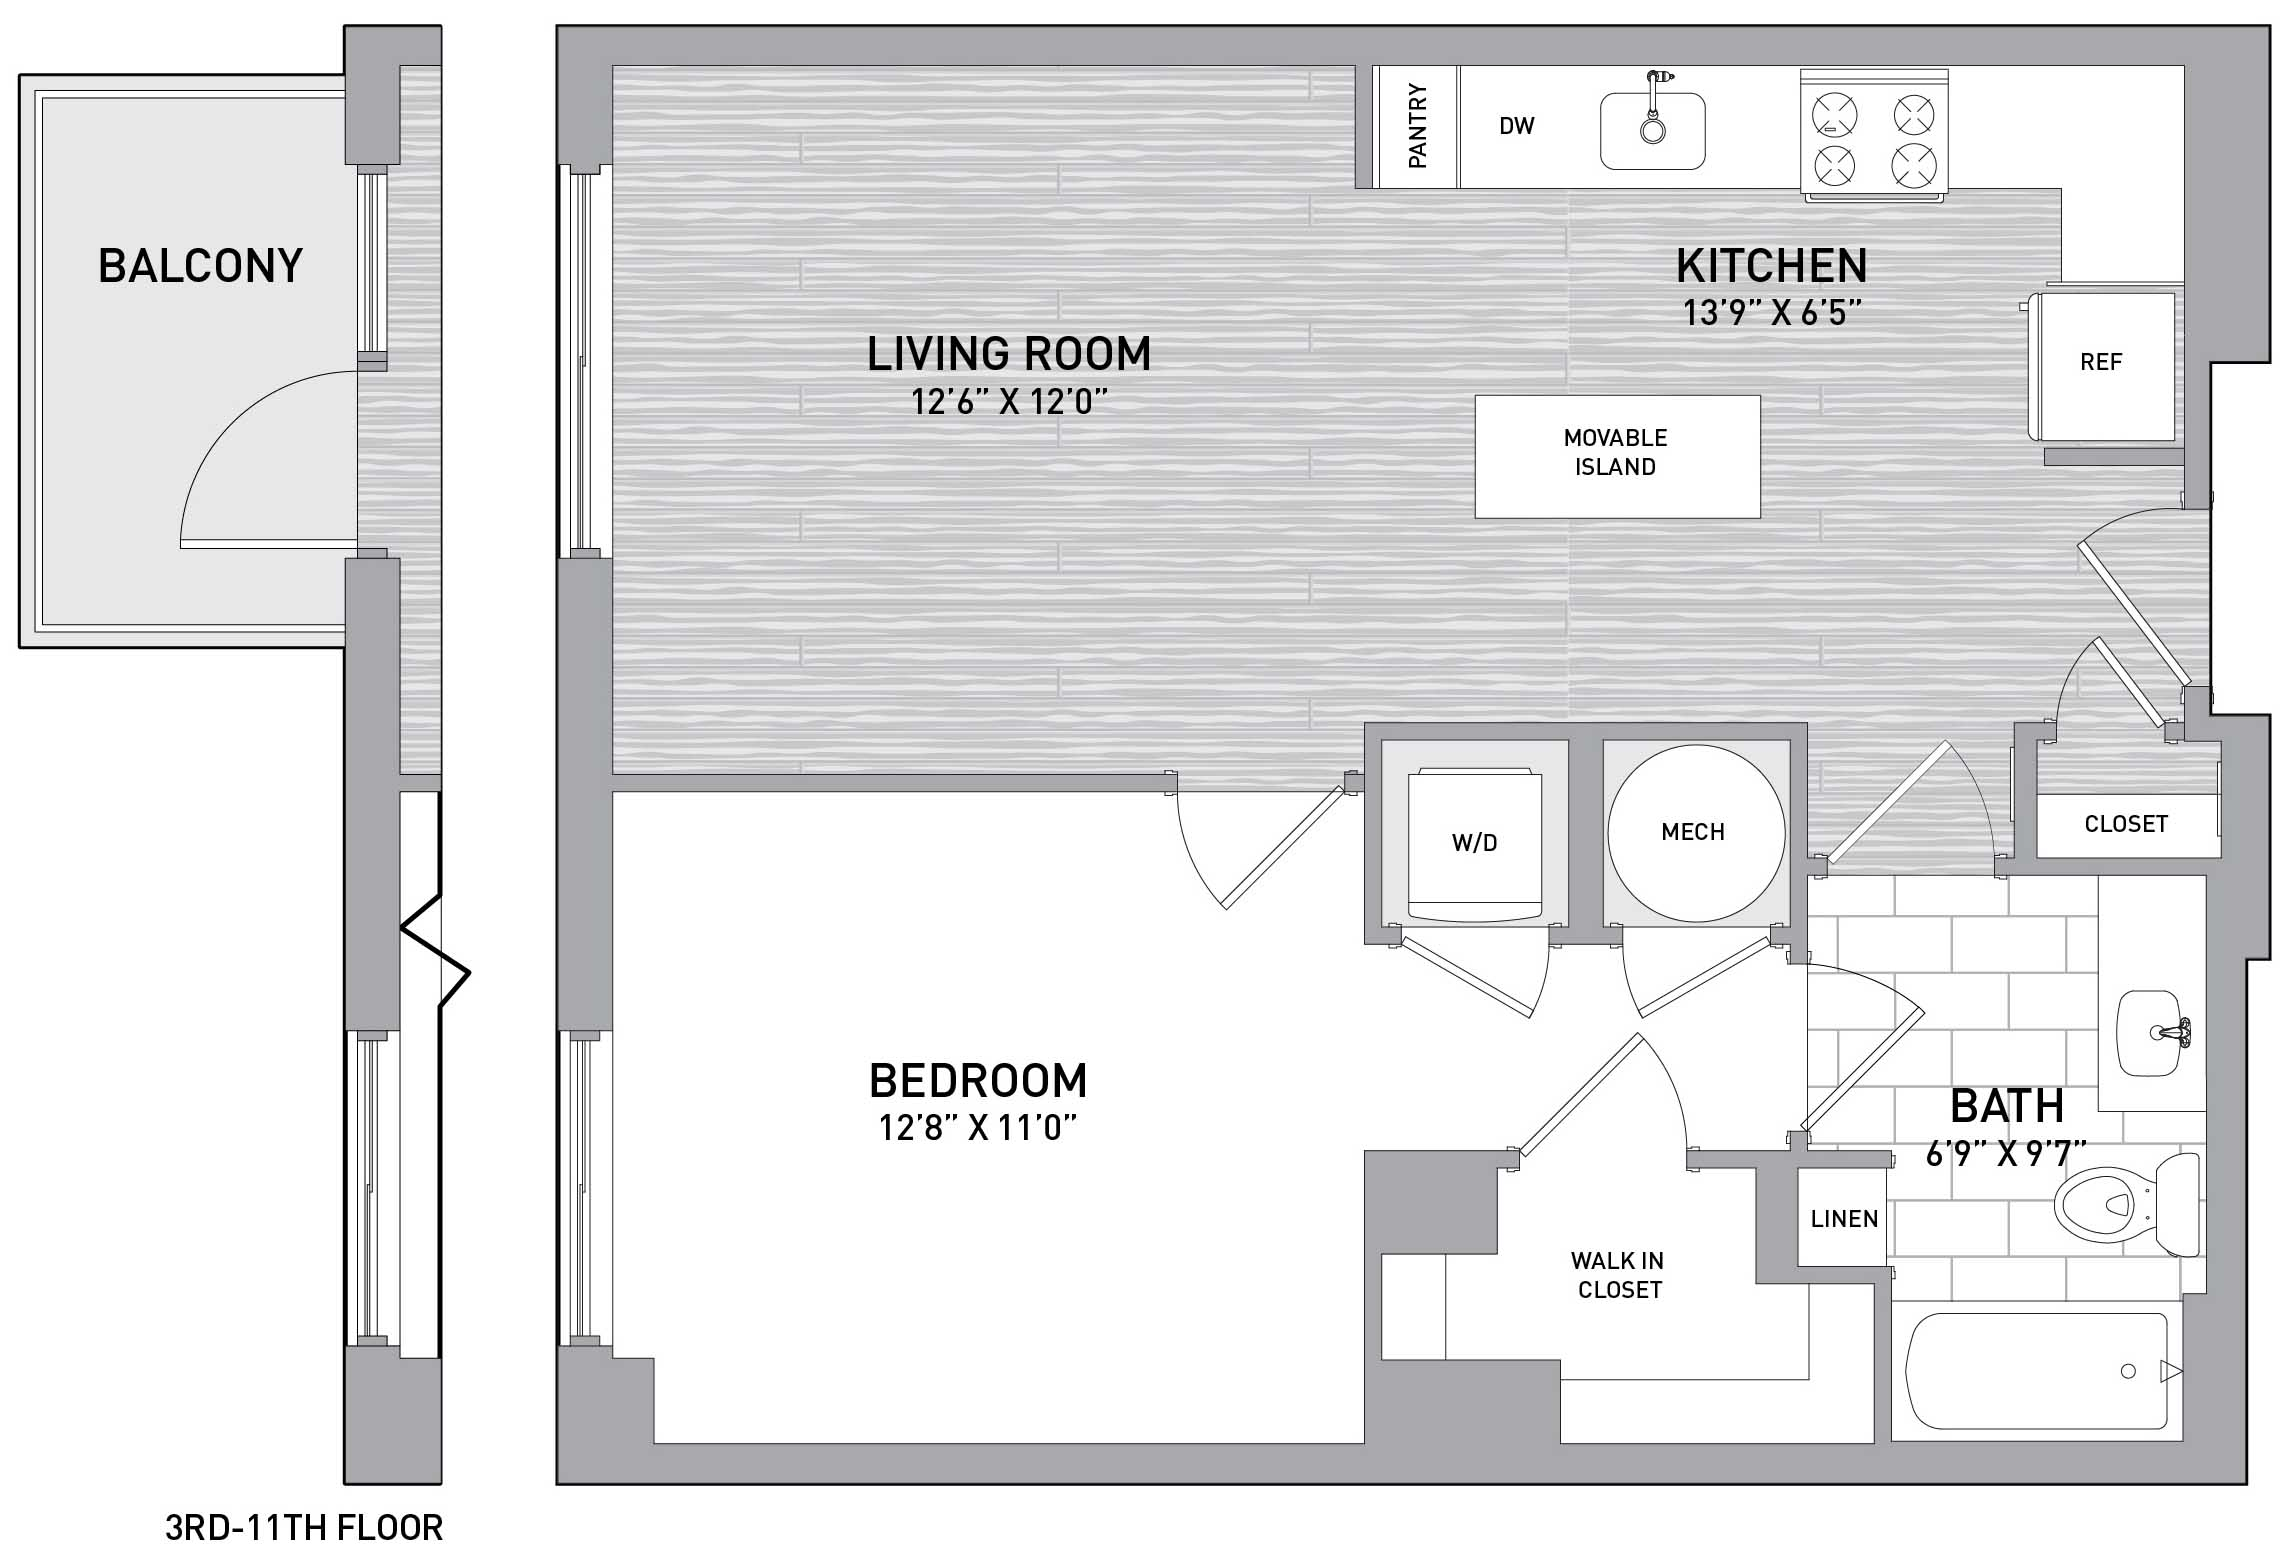 Floorplan Image of unit 151-0305